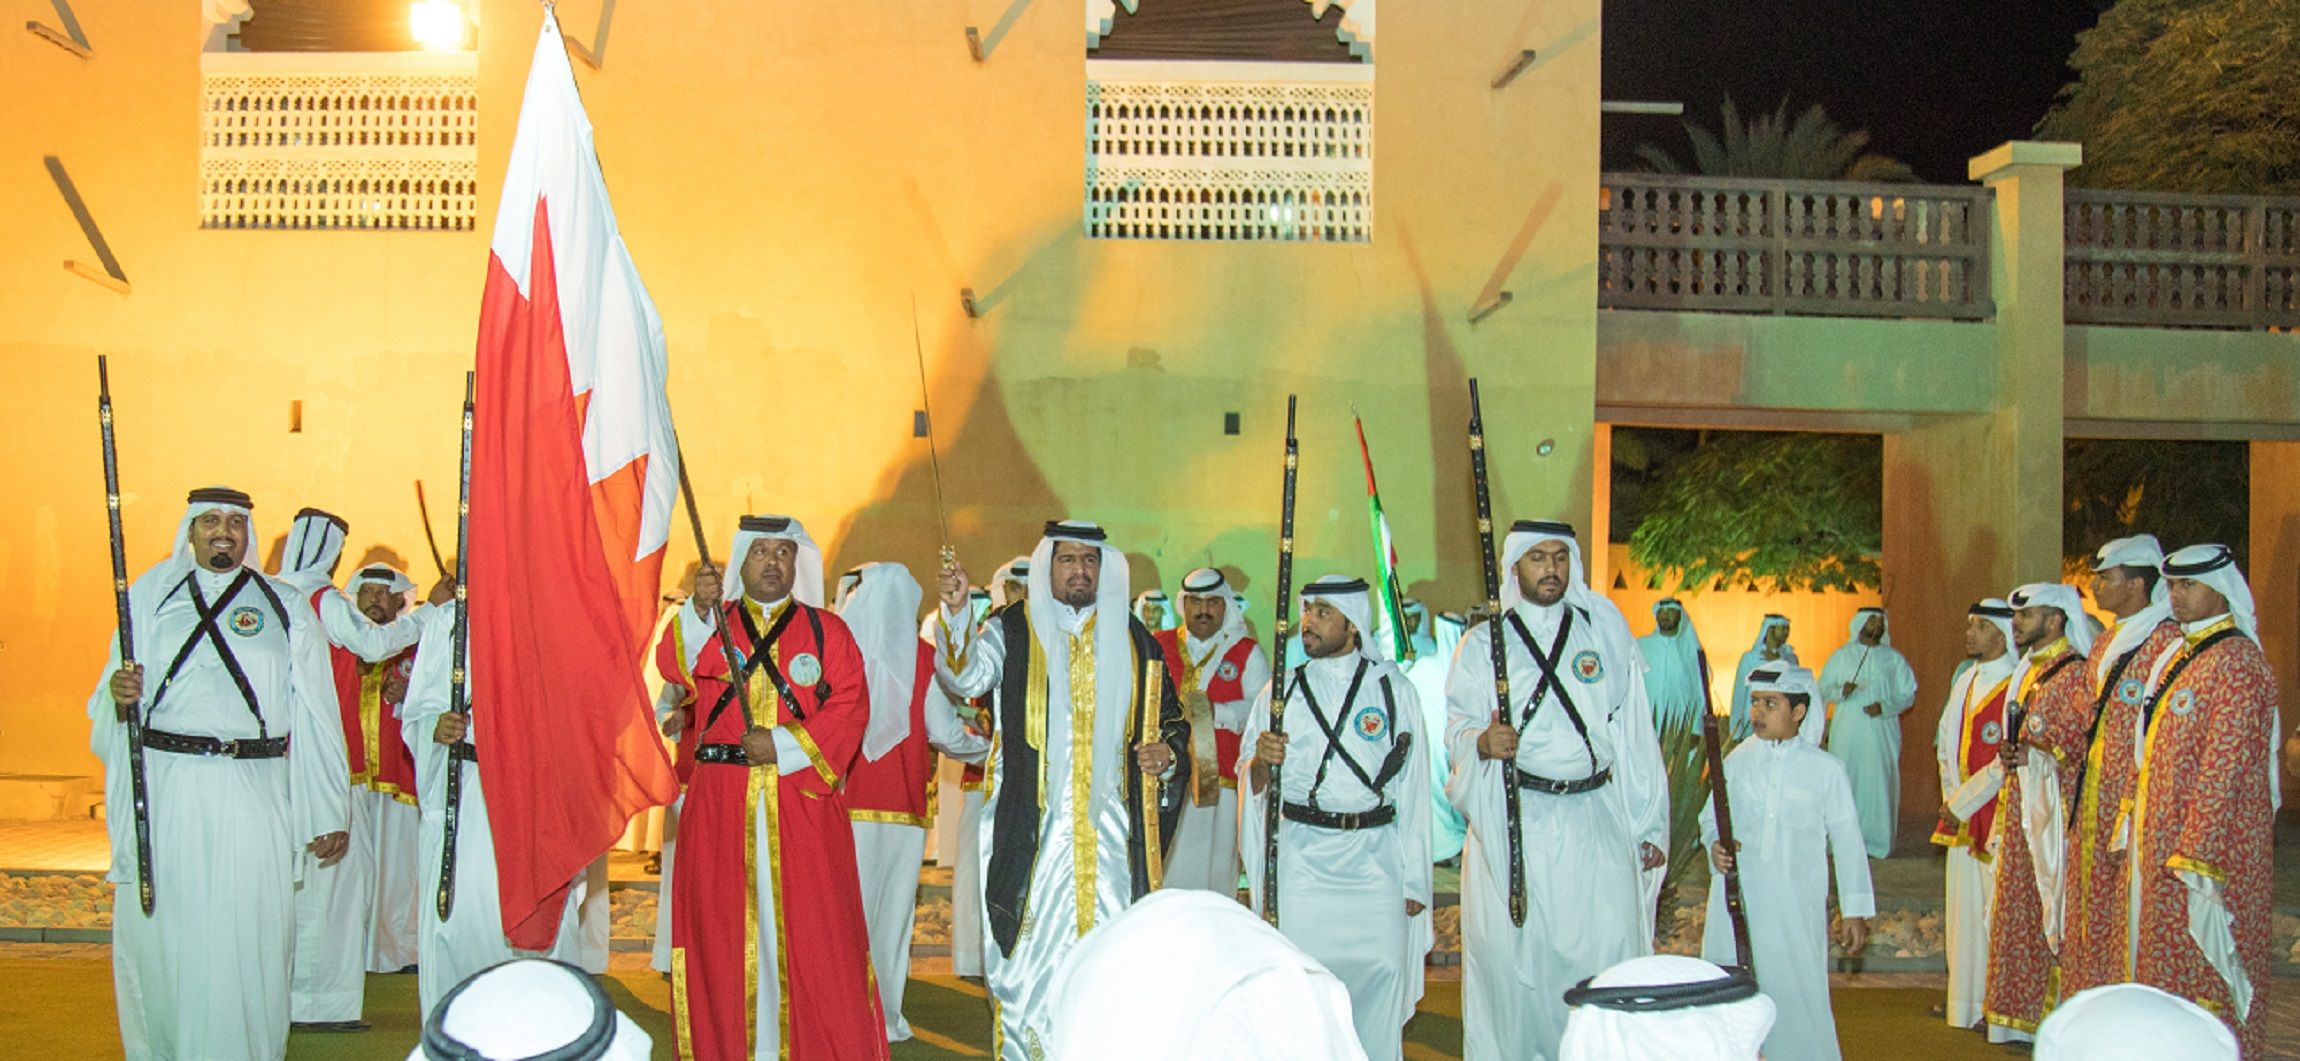 visitors enjoy traditional arabian experiences with my heritage, my responsibility event